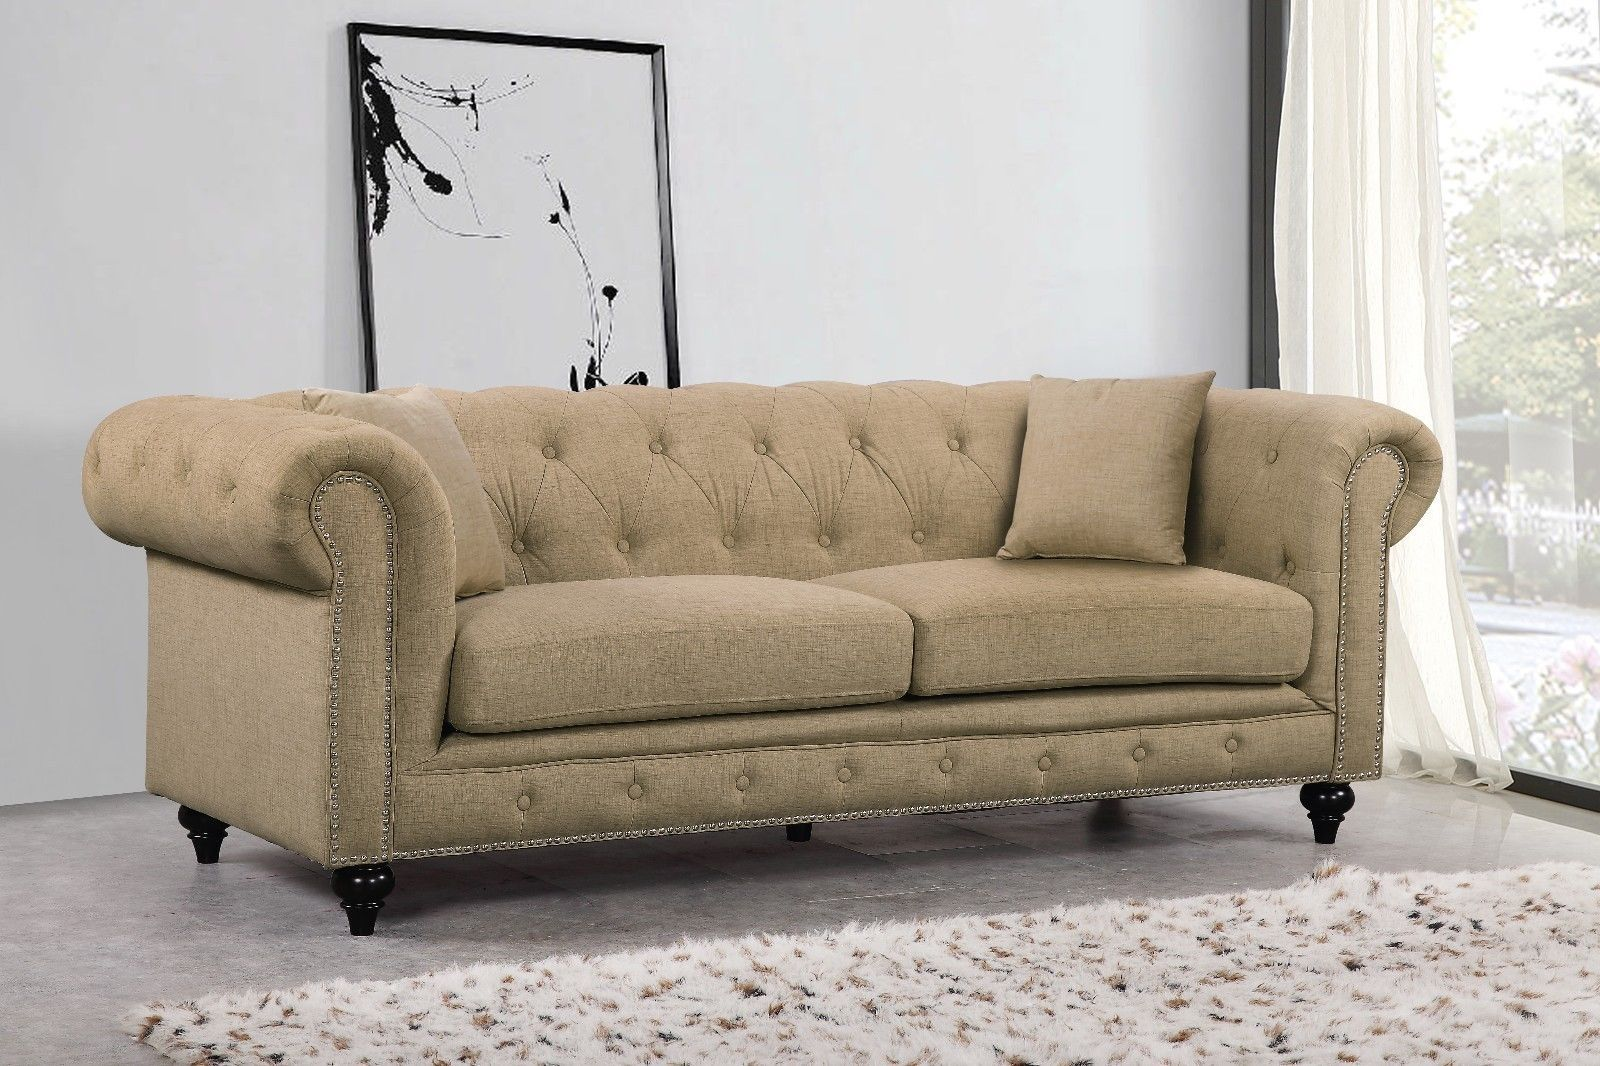 Meridian 662 Linen Fabric Living Room Sofa Set 2pc.Tufted Sand Traditional Style